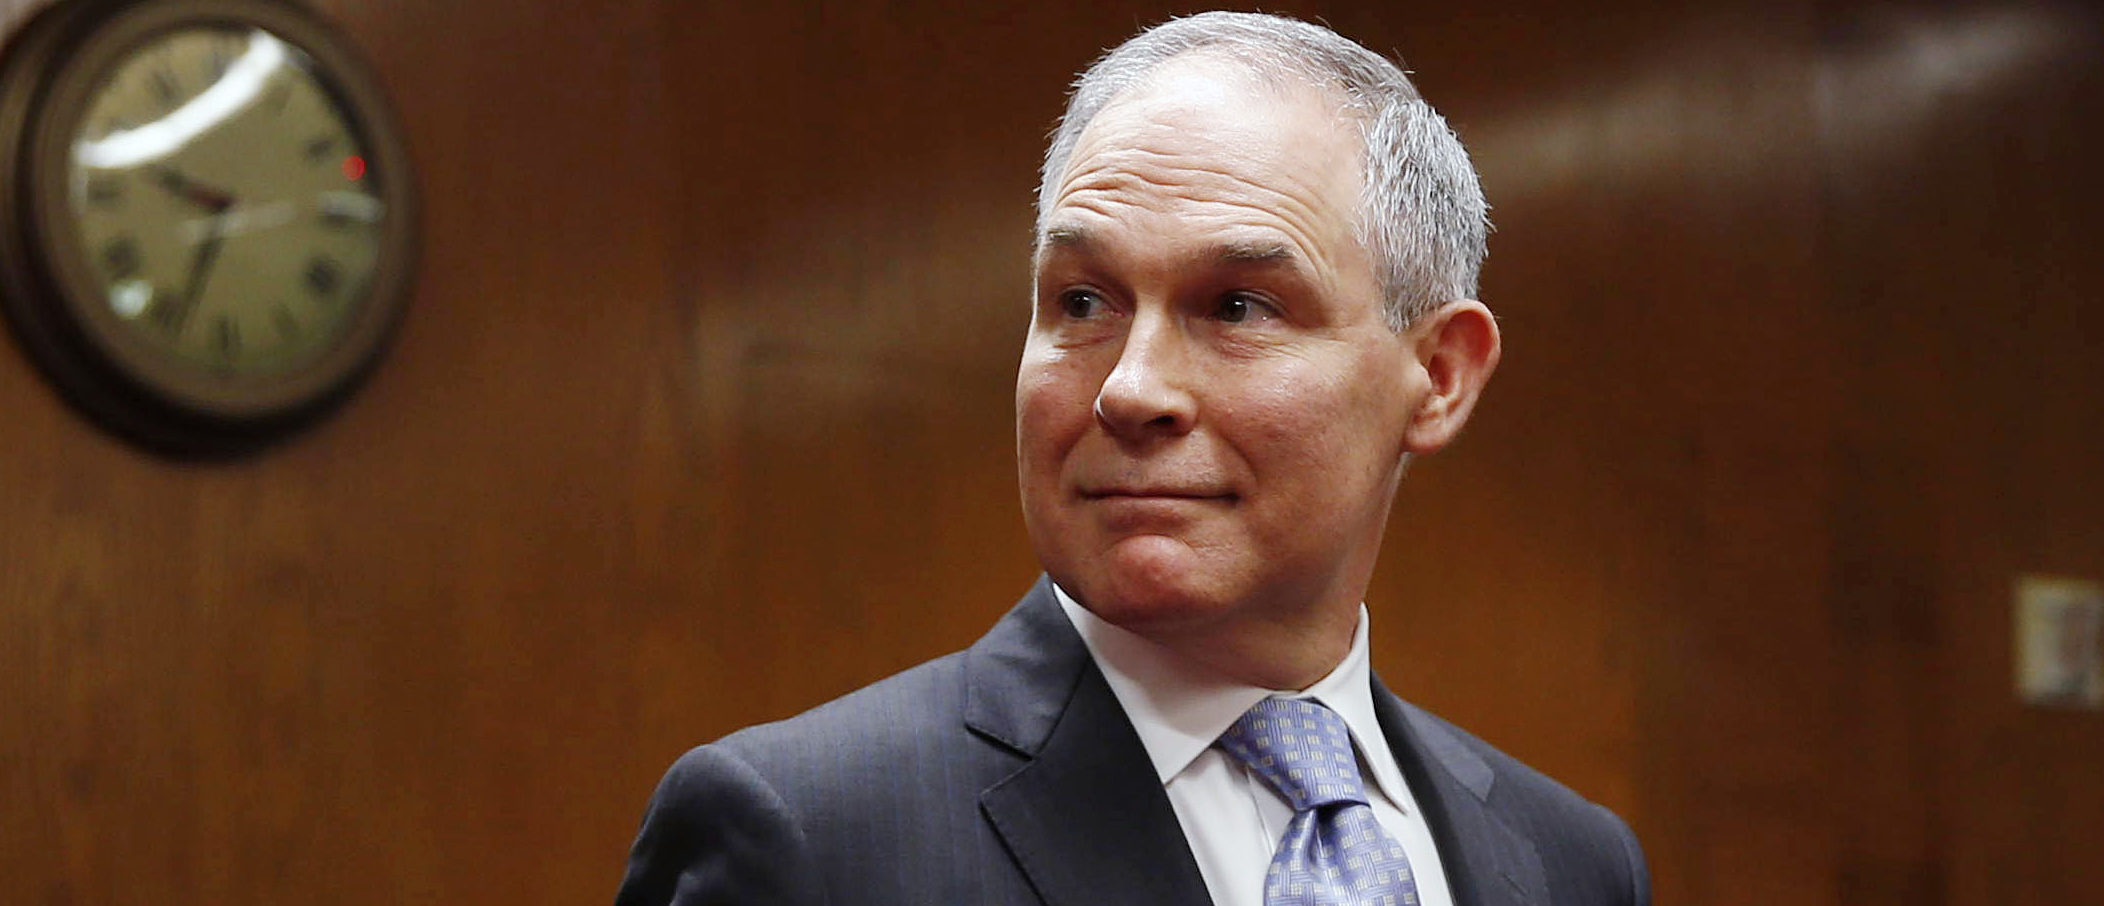 EPA Administrator Scott Pruitt arrives to testify before a Senate Appropriations Interior, Environment, and Related Agencies Subcommittee hearing on the proposed budget estimates and justification for FY2019 for the Environmental Protection Agency on Capitol Hill in Washington, U.S., May 16, 2018. REUTERS/Al Drago - HP1EE5G13U734